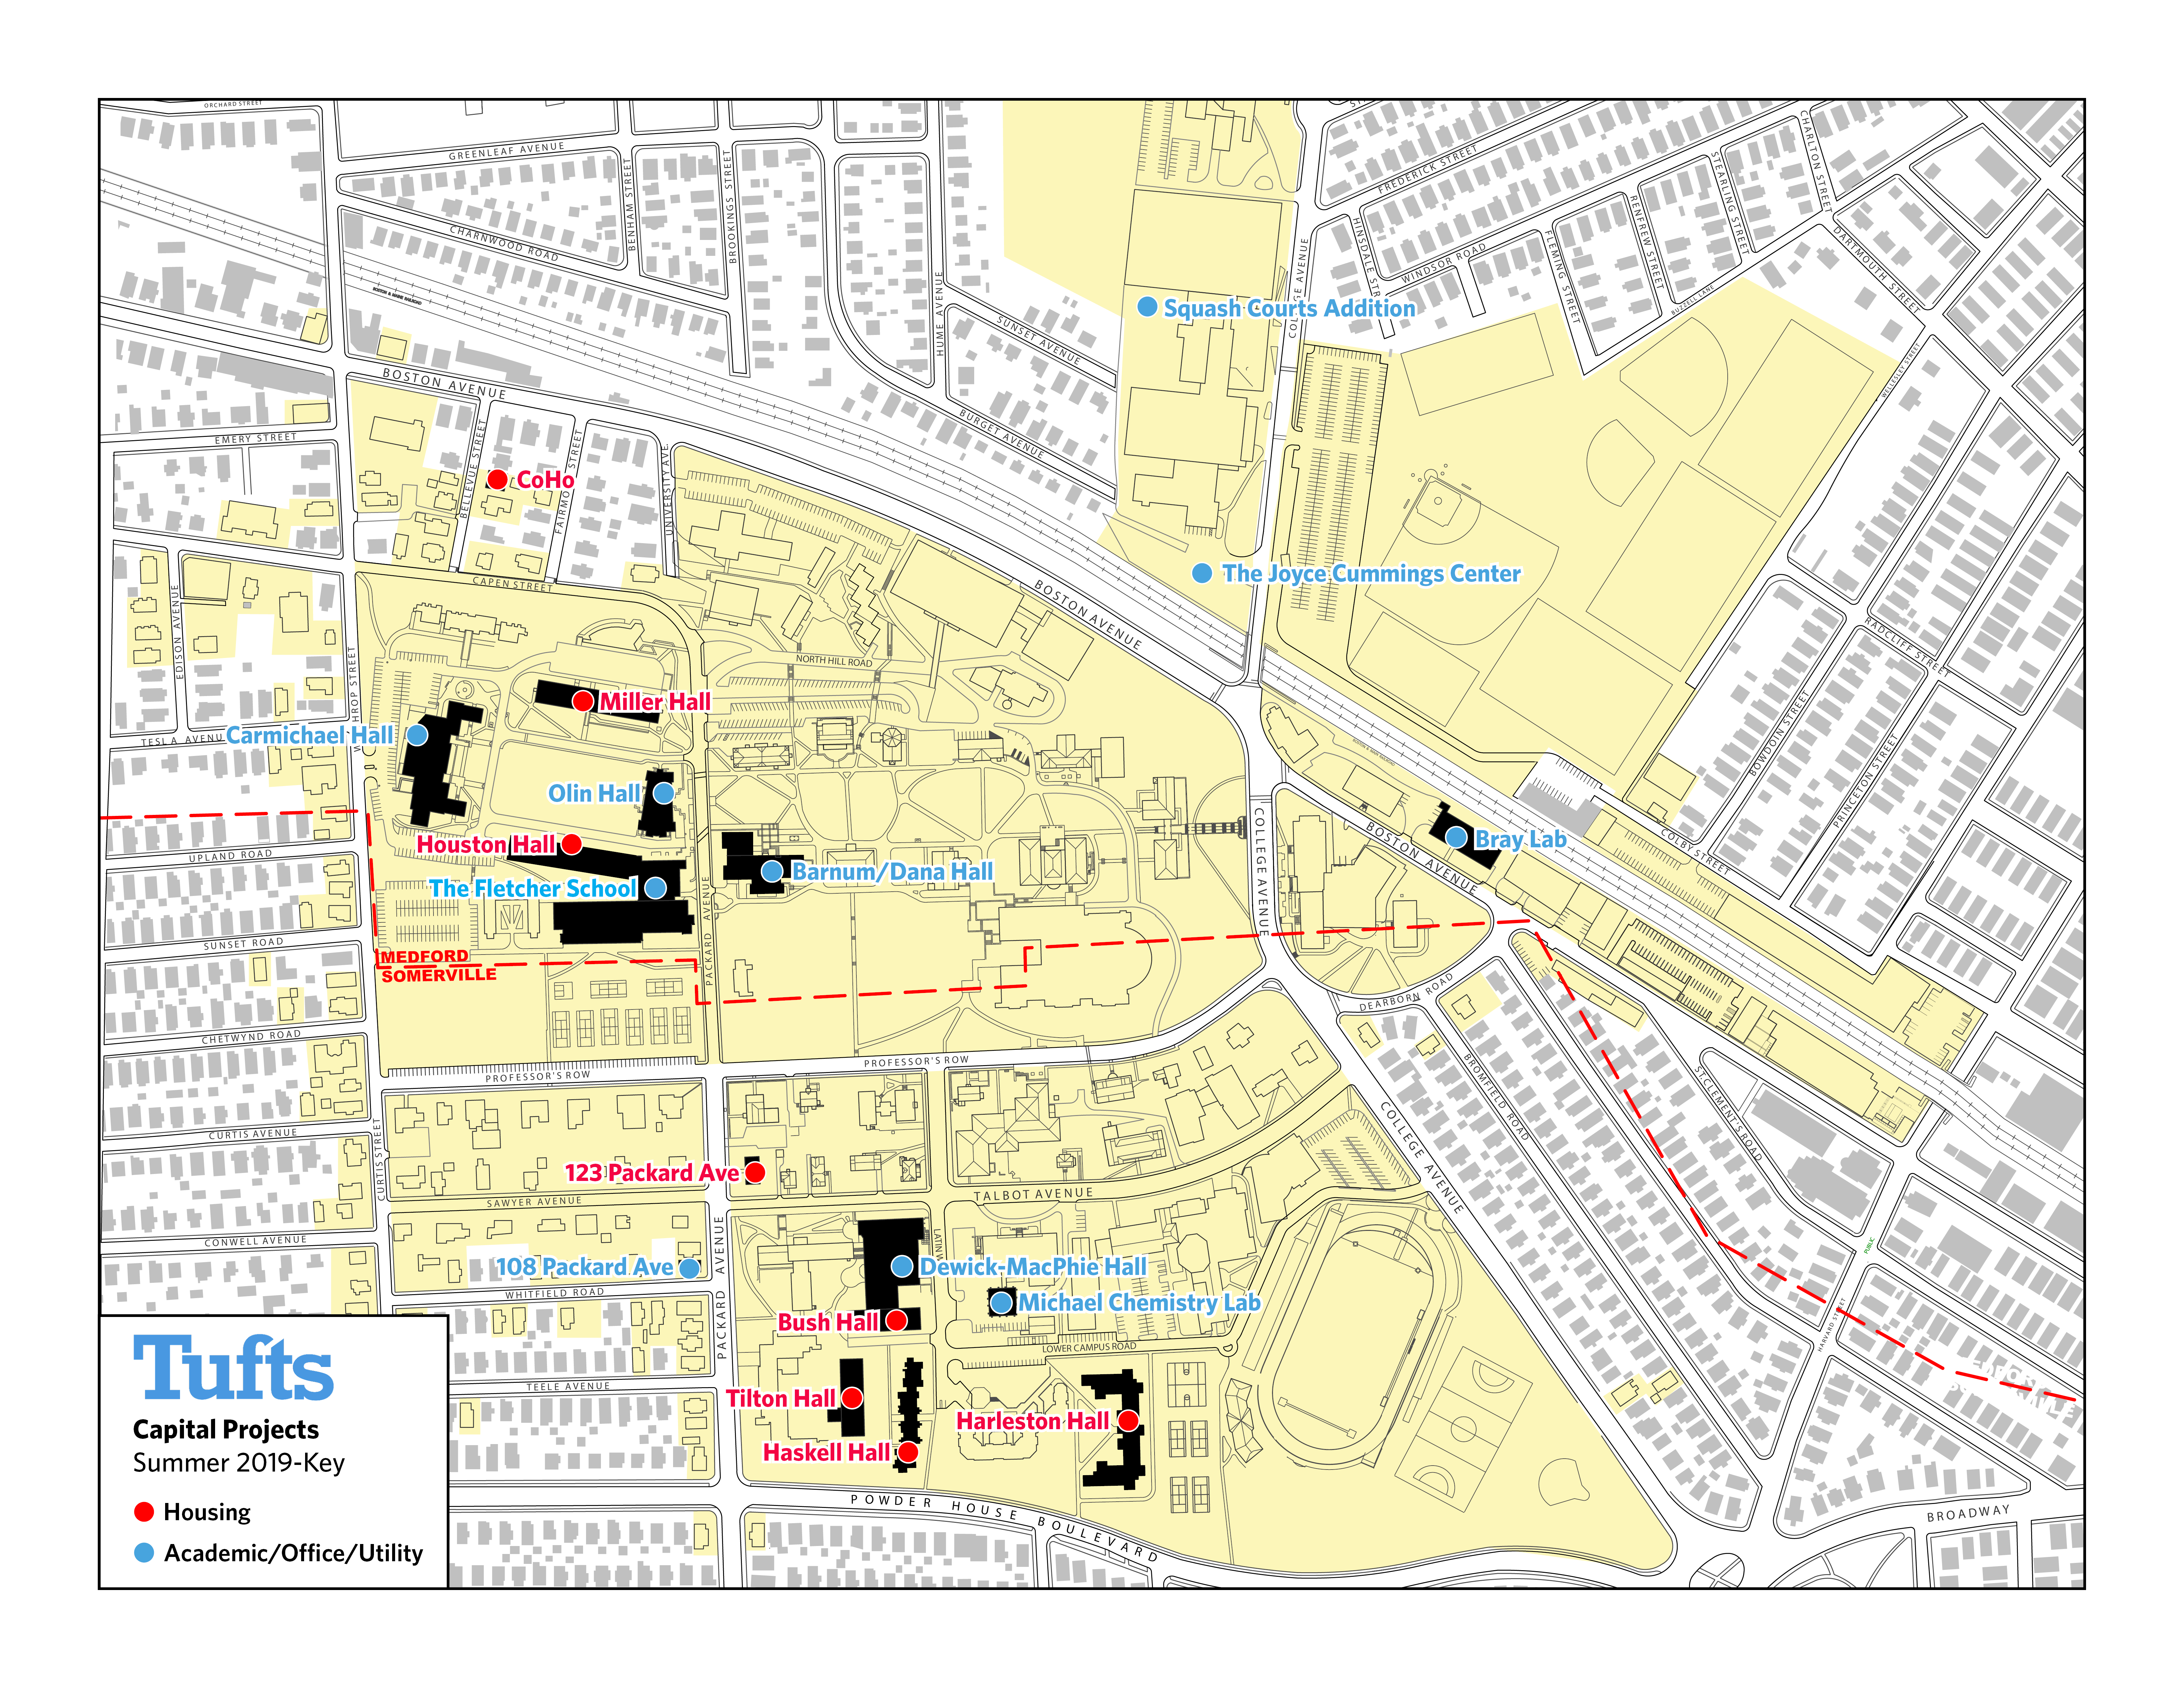 Location of Summer 2019 Construction Projects on Tufts Medford/Somerville Campus